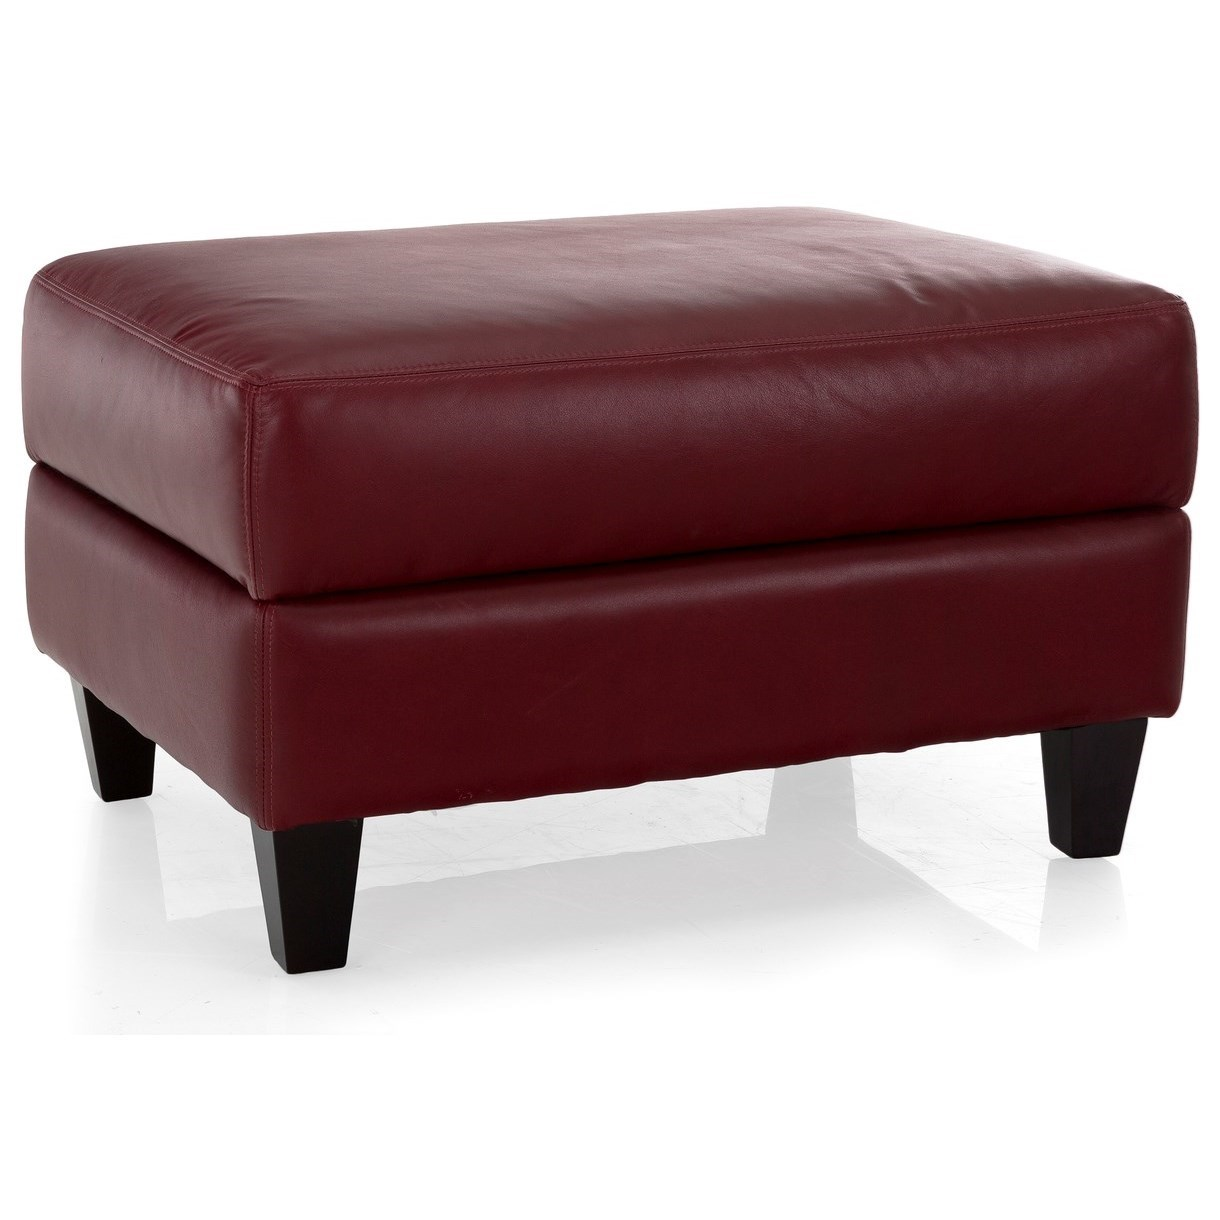 Alessandra Connections Storage Ottoman by Decor-Rest at Wayside Furniture